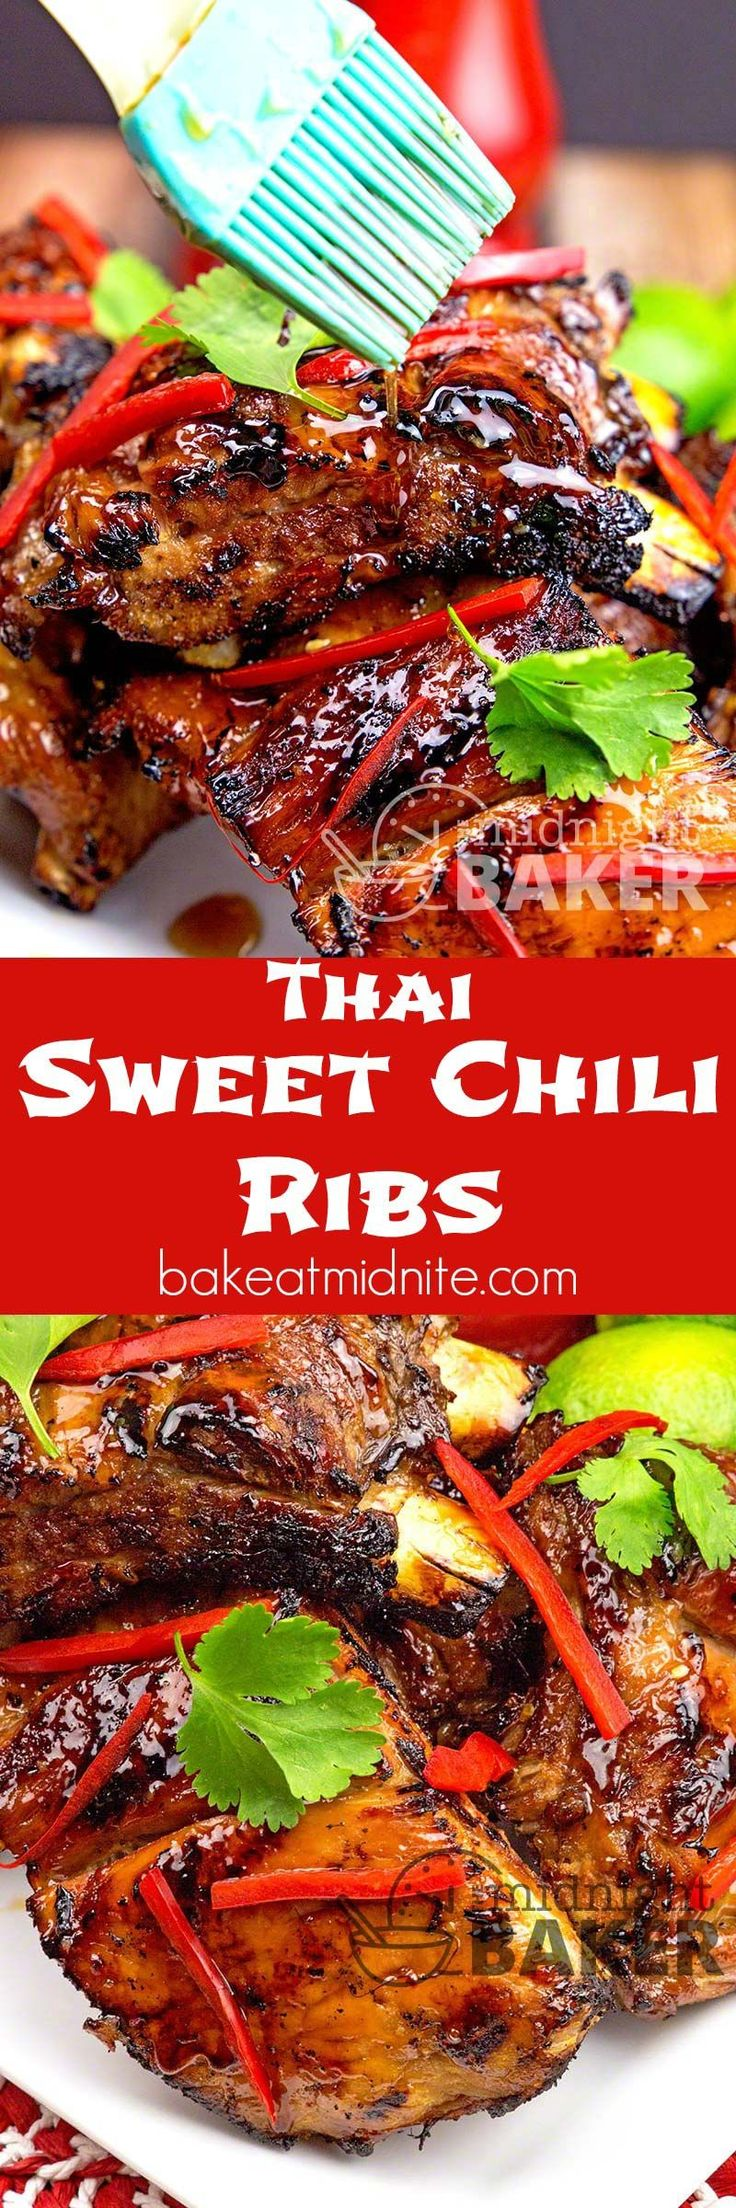 595 best baby food beef images on pinterest cooking food baby yummy pork baby back ribs with a sweet and tangy thai chili sauce glaze baby food recipesthai food recipeschinese forumfinder Images